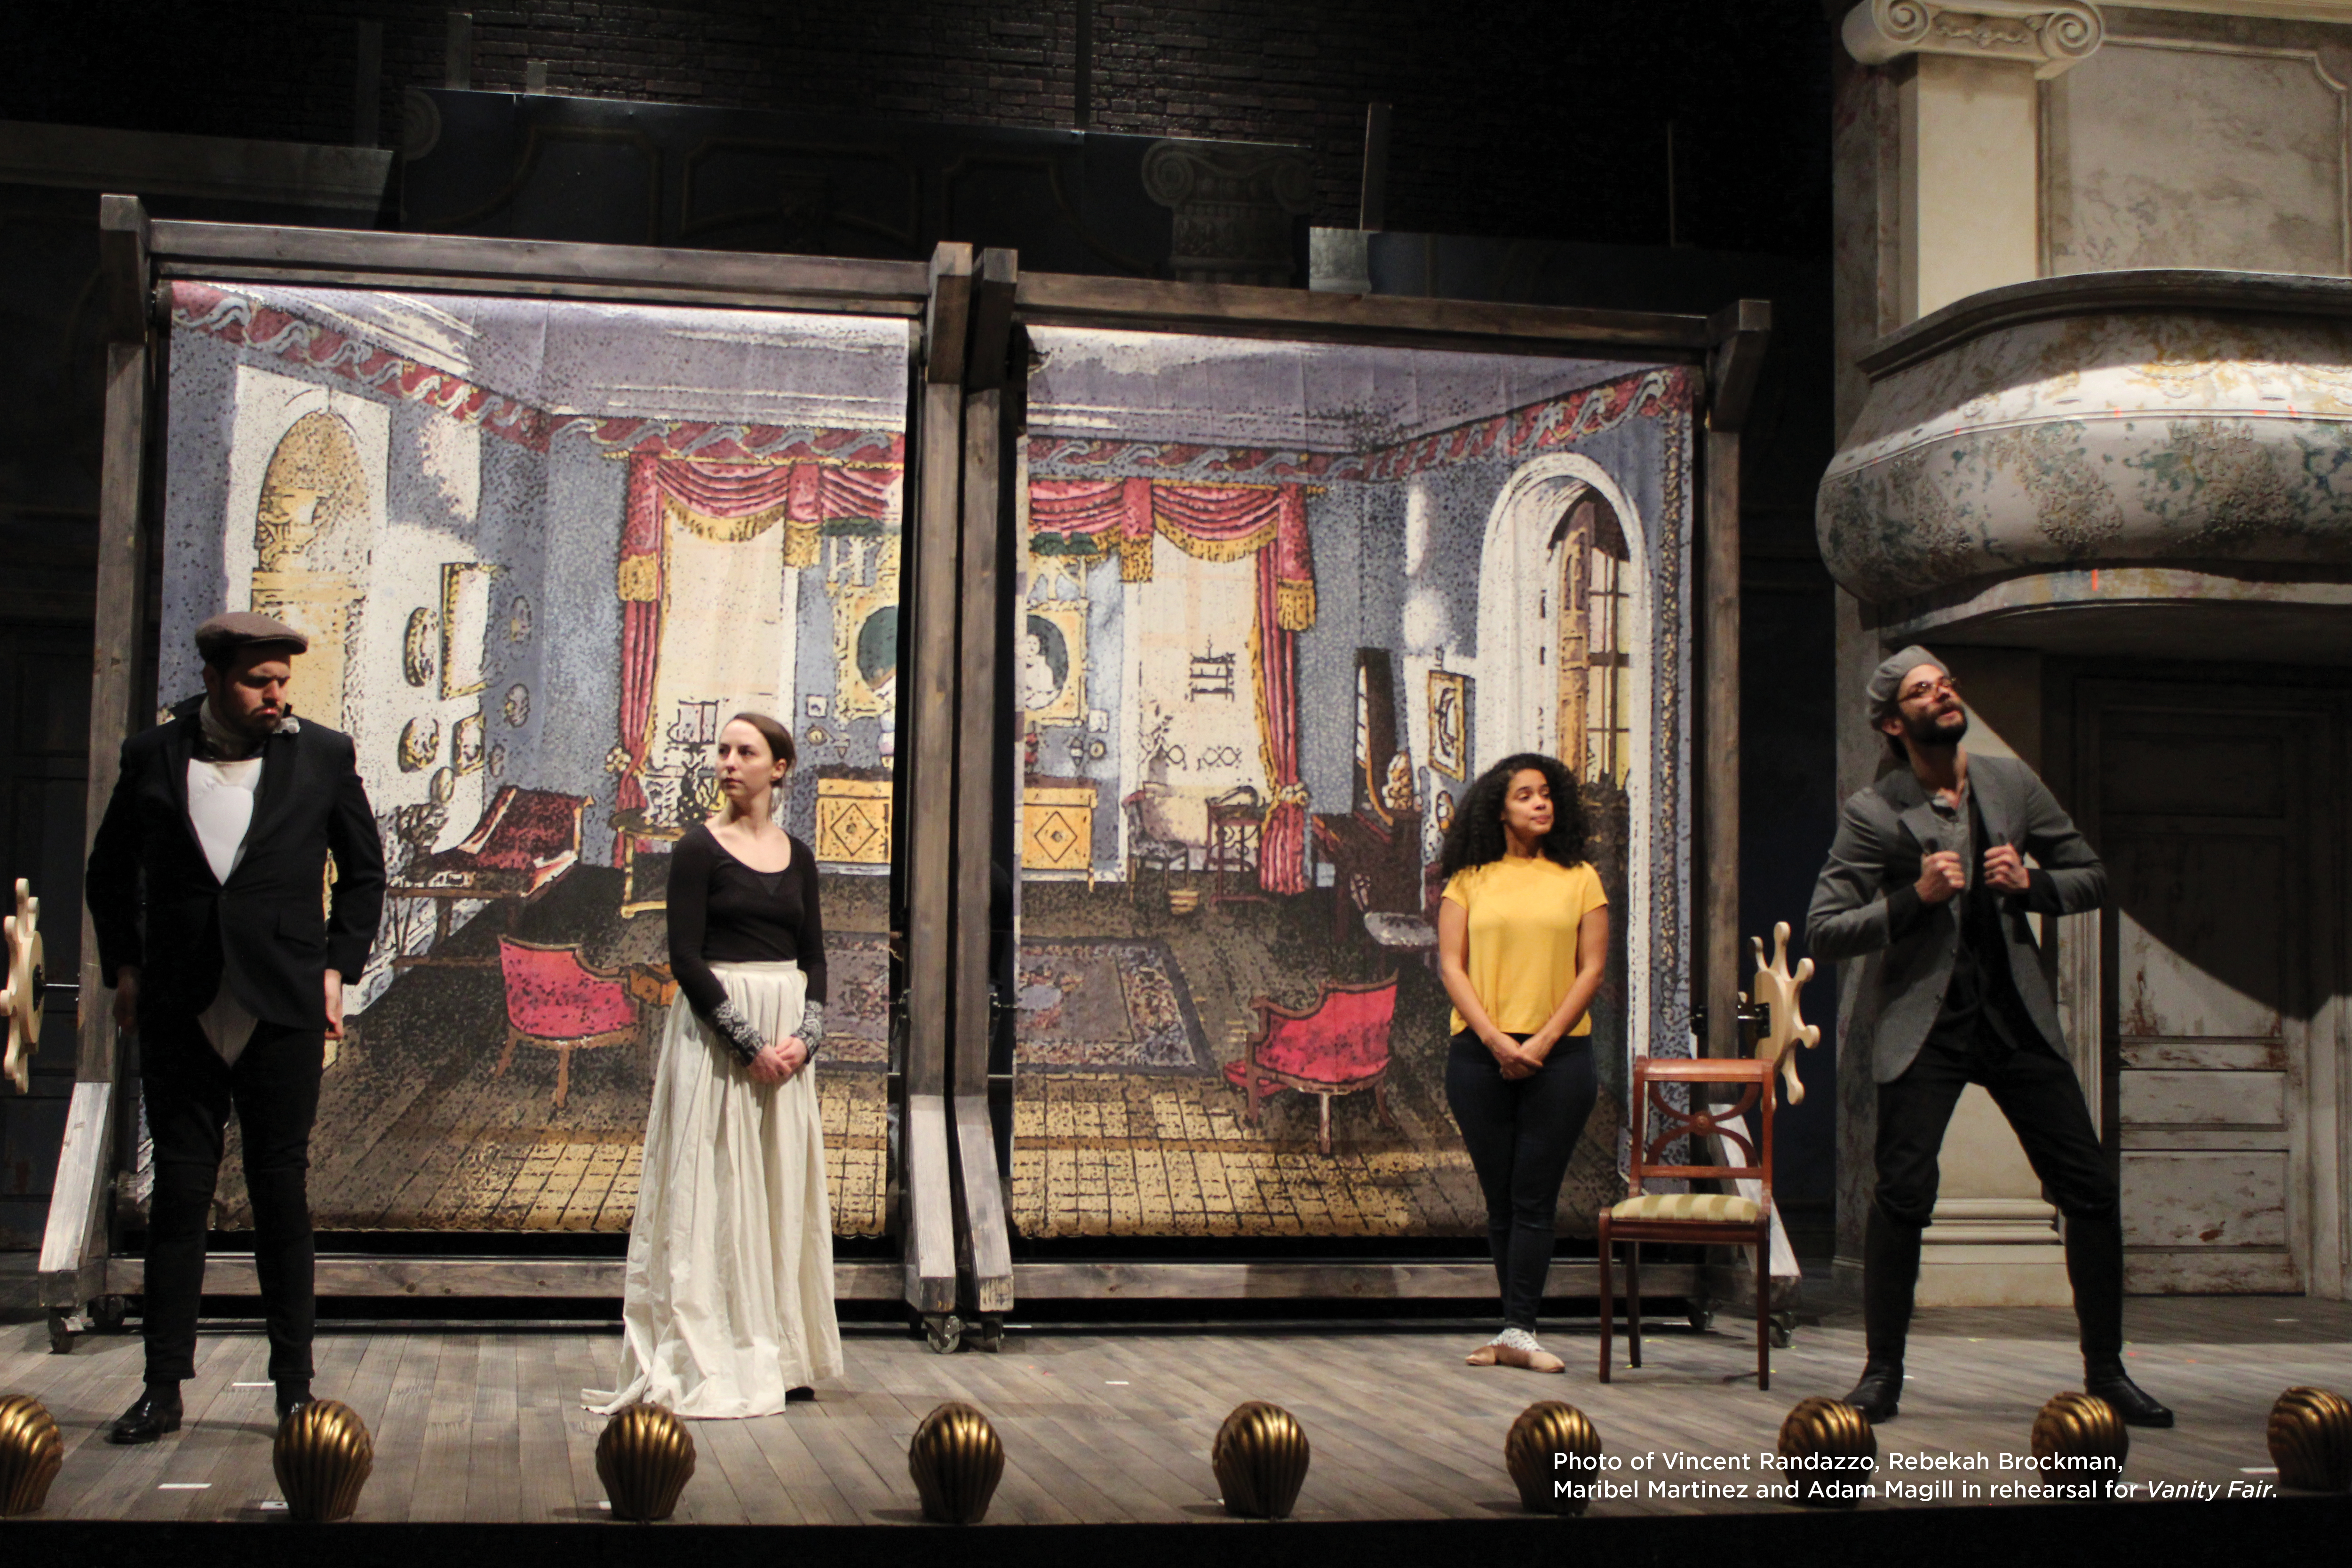 Photo of Vincent Randazzo, Rebekah Brockman, Maribel Martinez and Adam Magill in rehearsal for Vanity Fair.